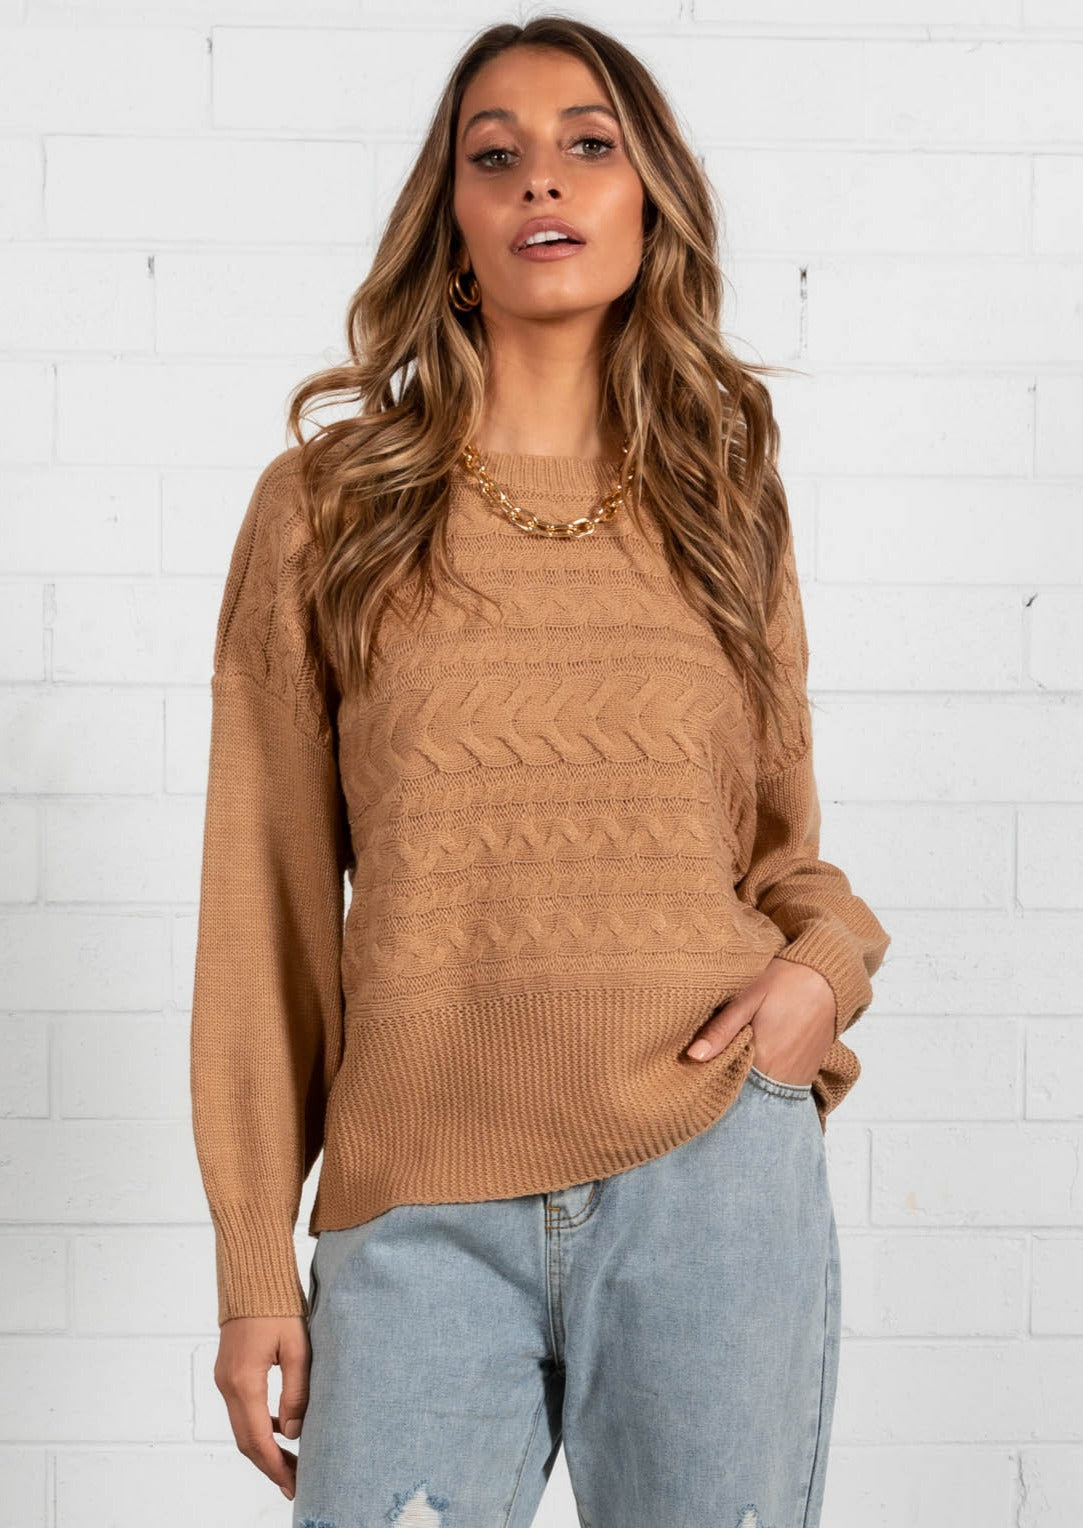 Macabee Cable Sweater - Tan